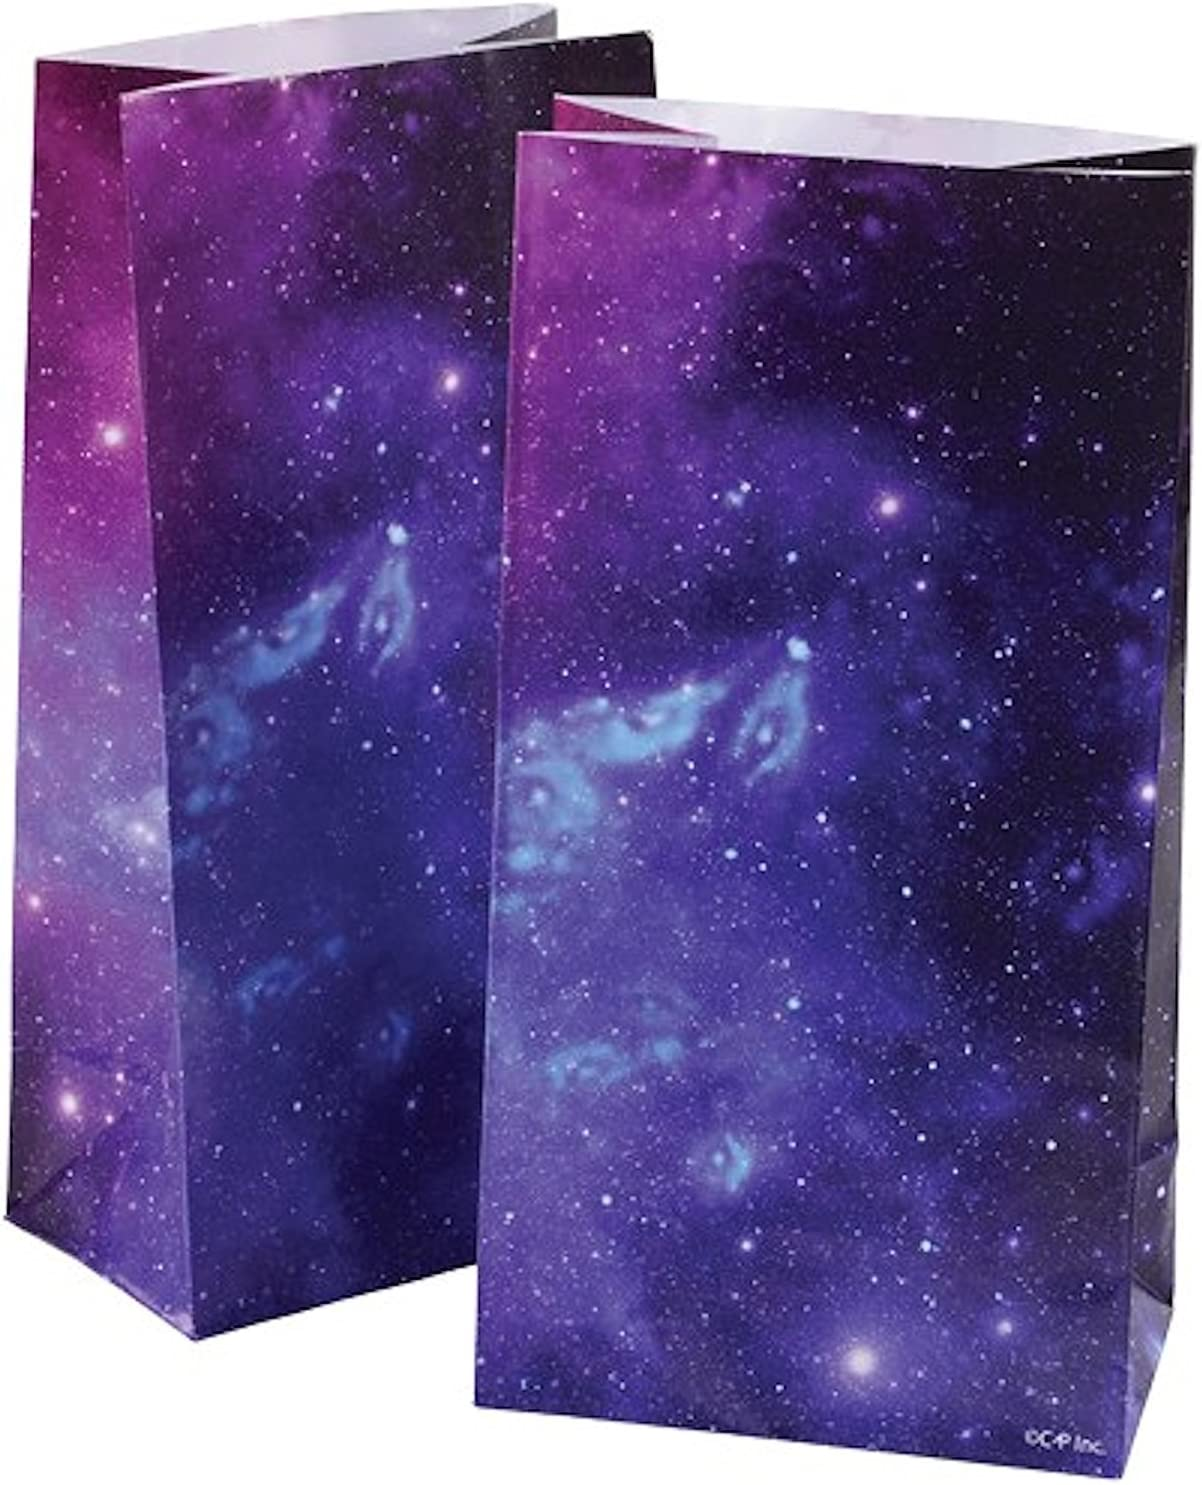 2 Dozen (24) OUTER Space Paper GOODY BAGS -GALAXY Planets - Science SOLAR SYSTEM Classroom PARTY FAVORS